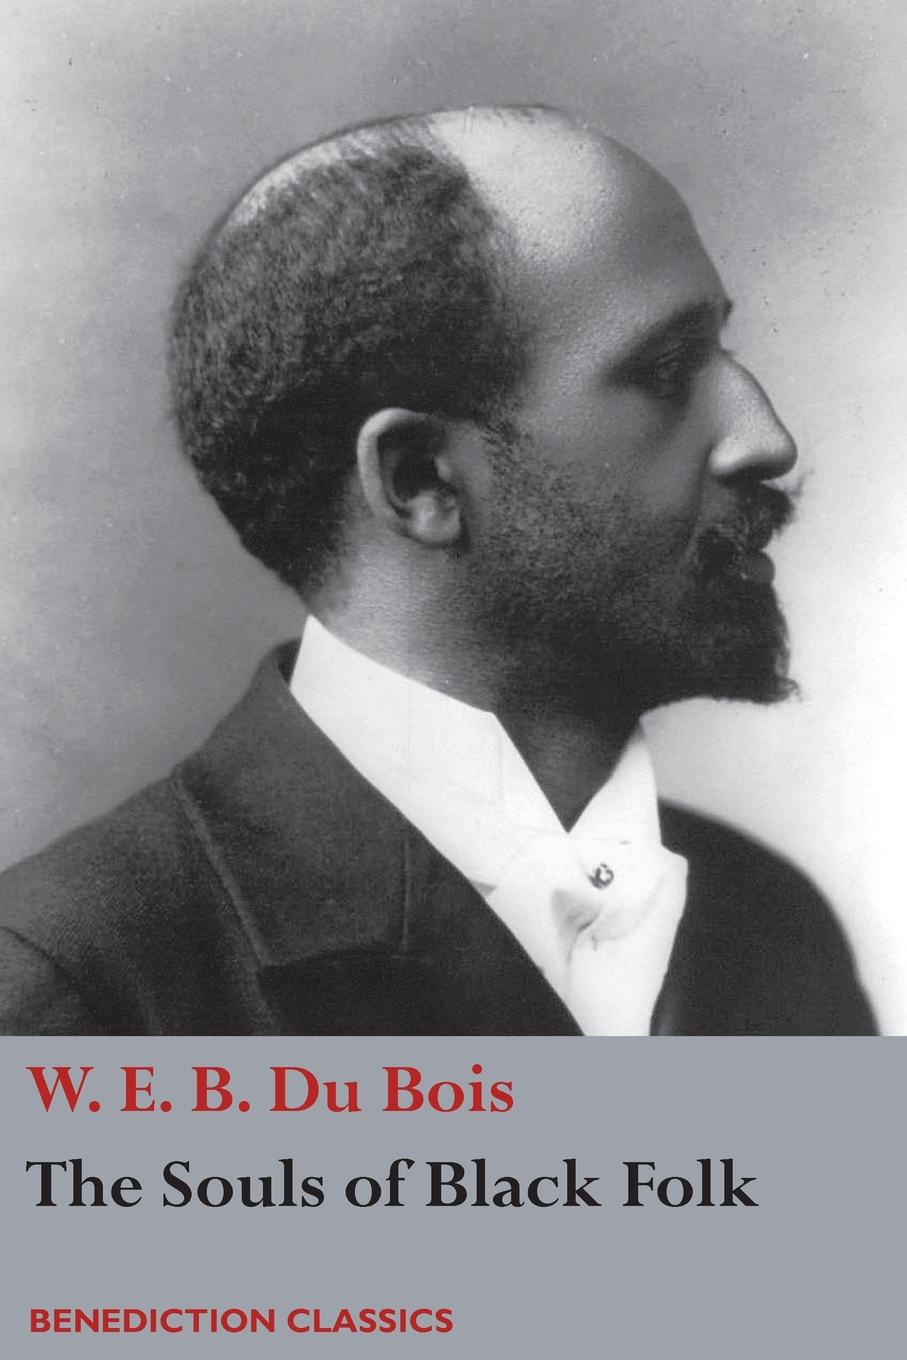 W. E. B. Du Bois The Souls of Black Folk frank turner and the sleeping souls lingen ems